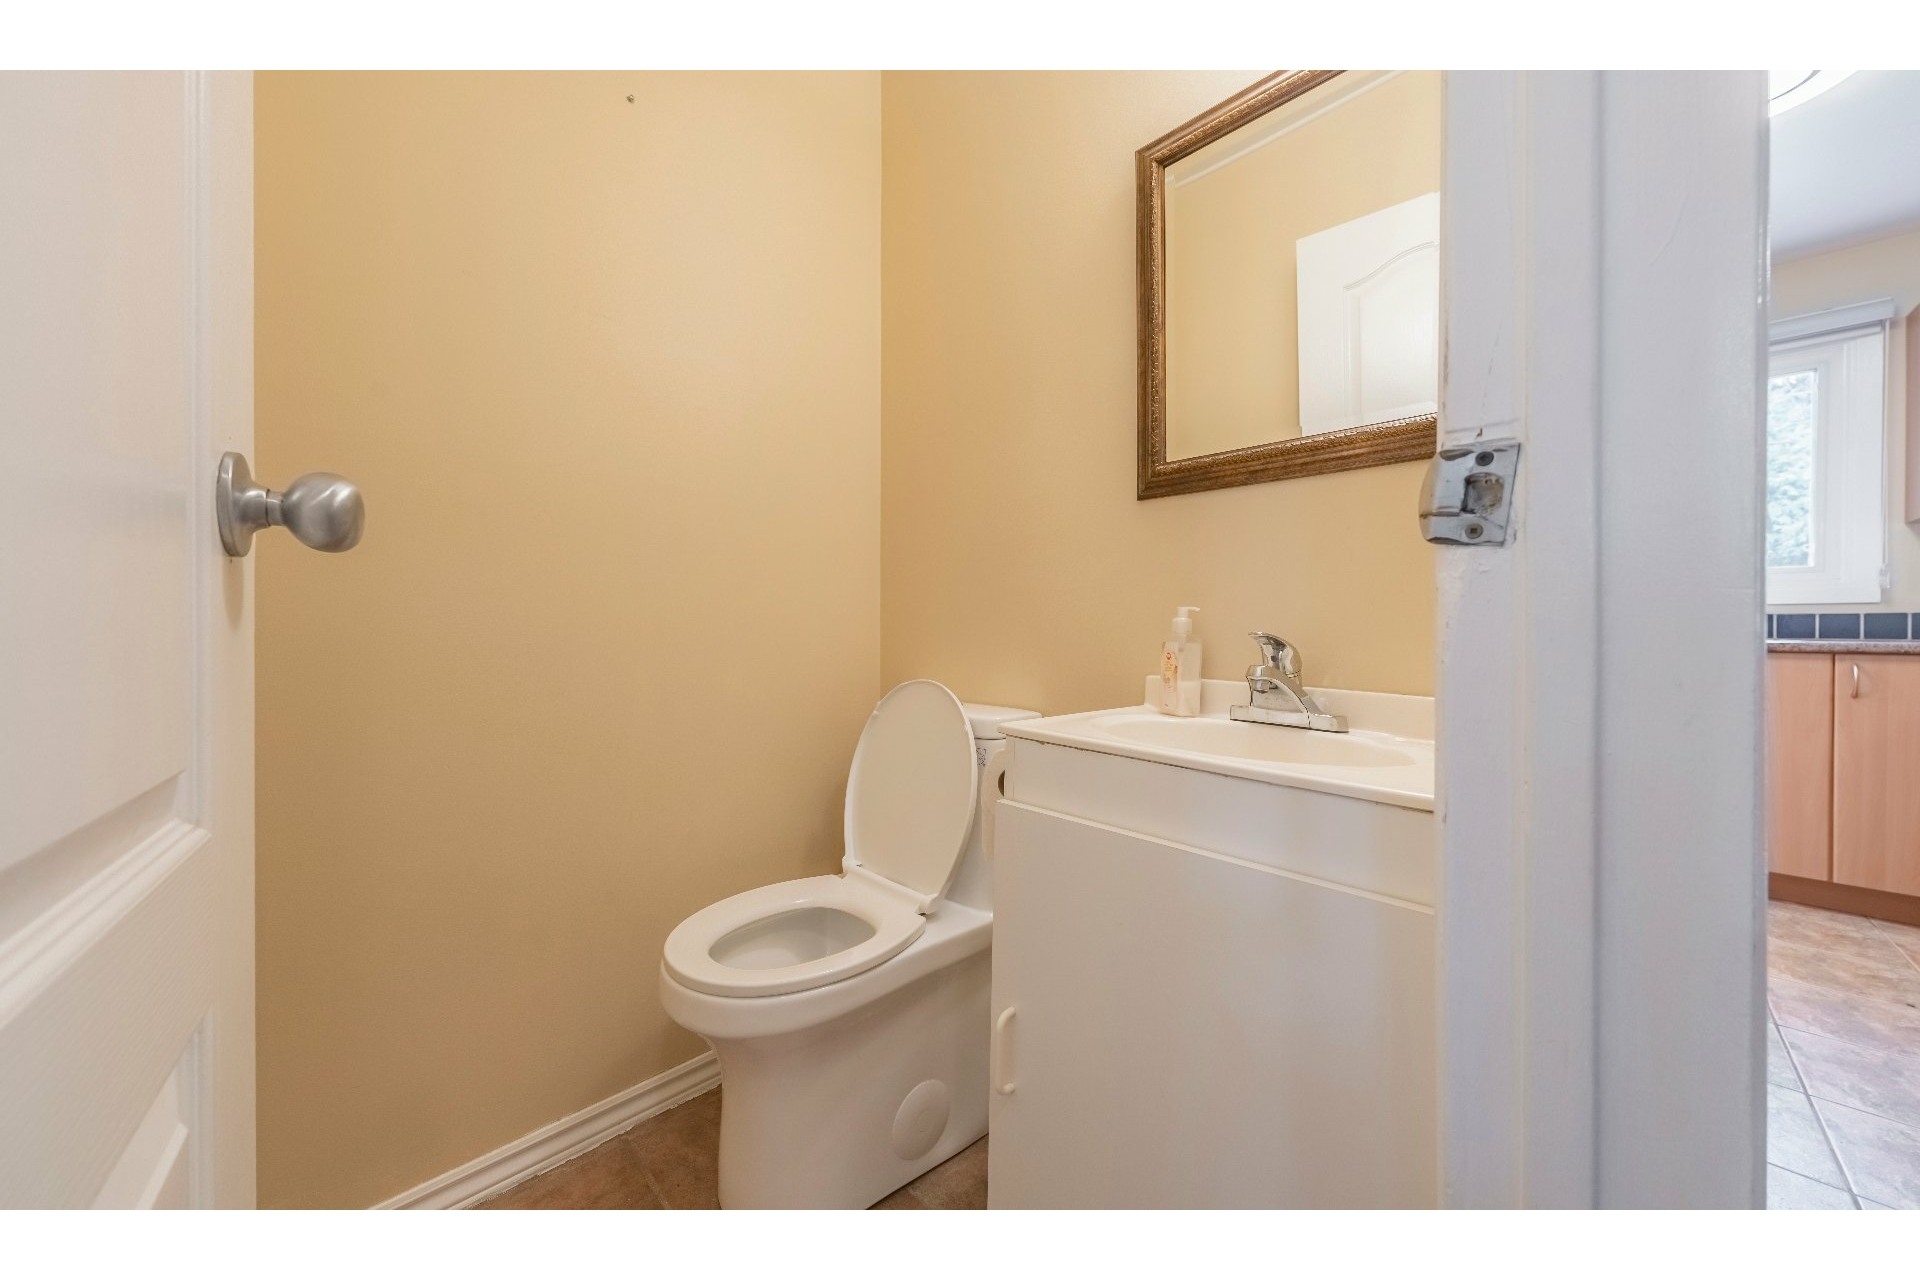 image 10 - House For rent Pointe-Claire - 9 rooms